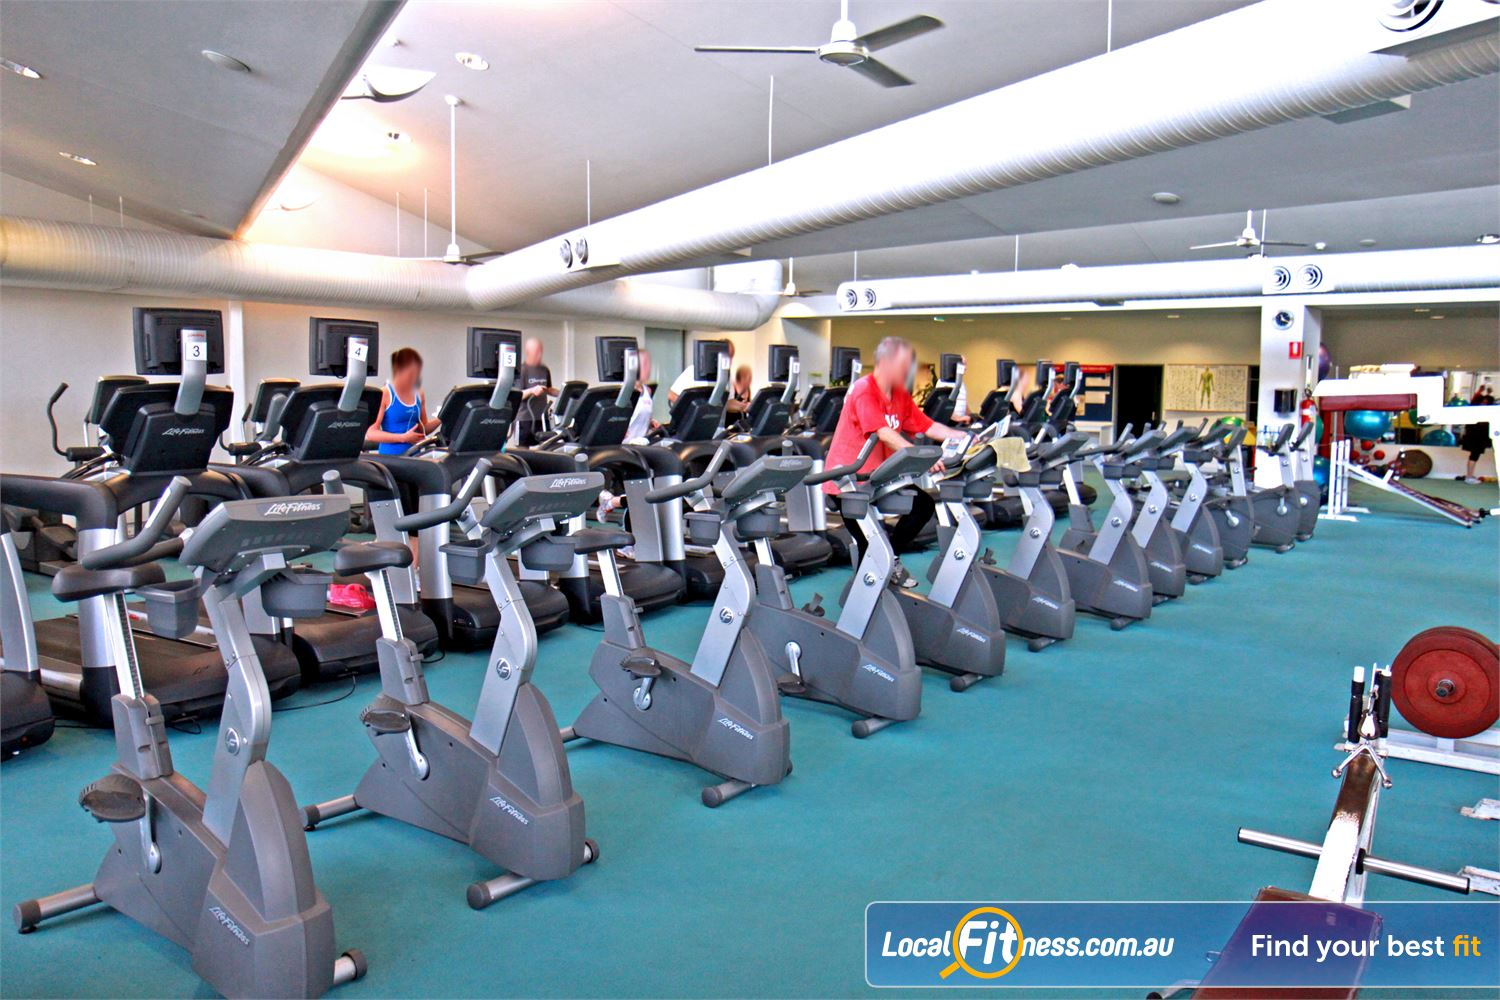 Ascot Vale Leisure Centre Near Moonee Ponds The spacious cardio theatre part of the 1000 sq/m Ascot Vale gym space.